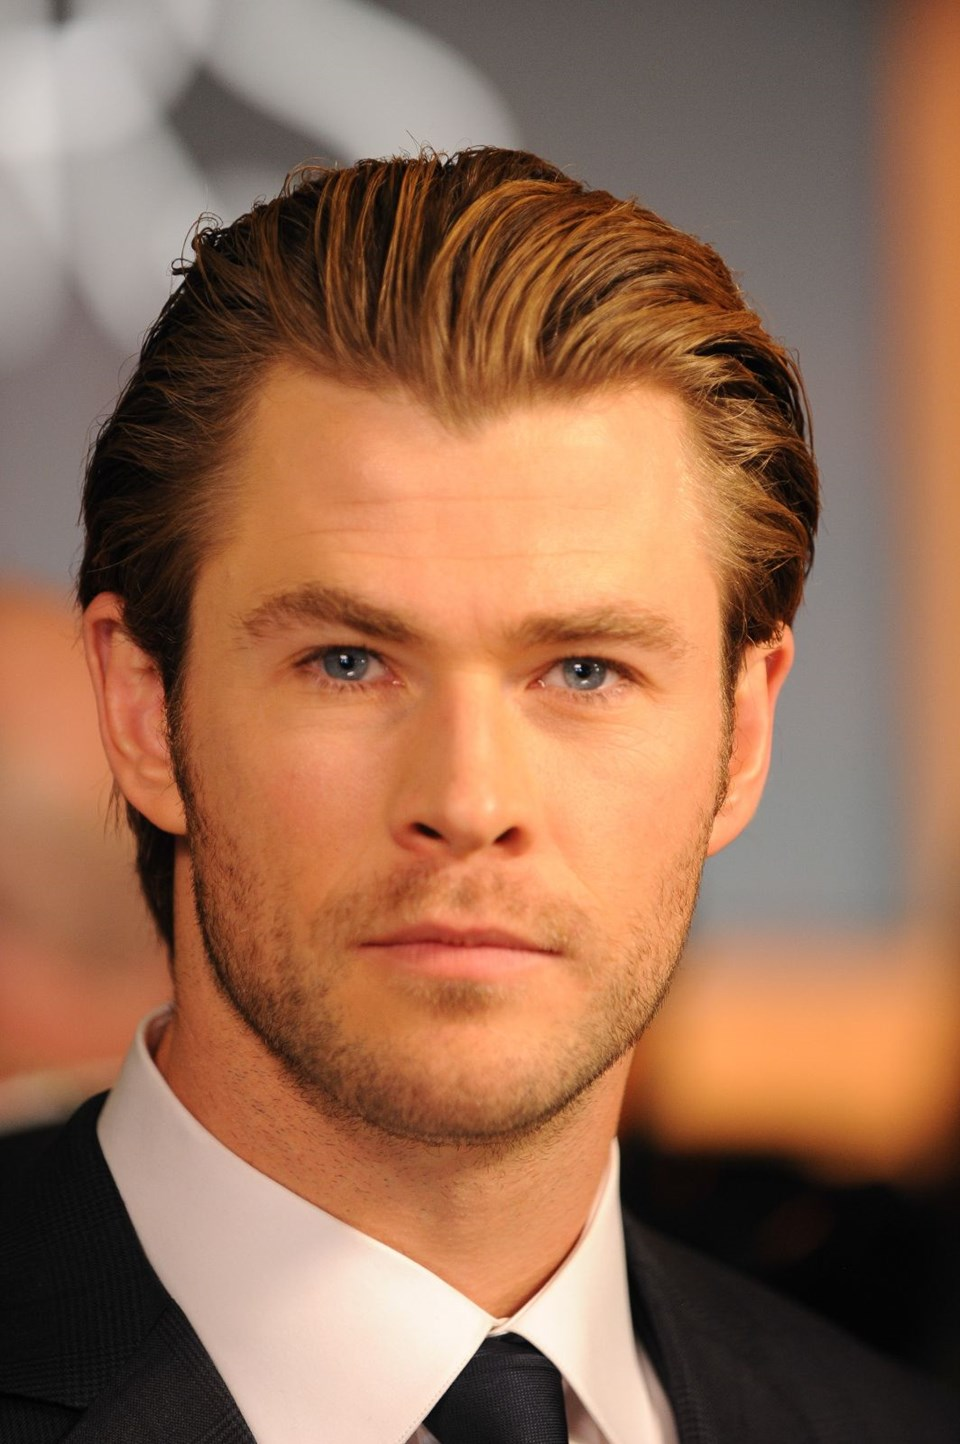 2014: CHRIS HEMSWORTH